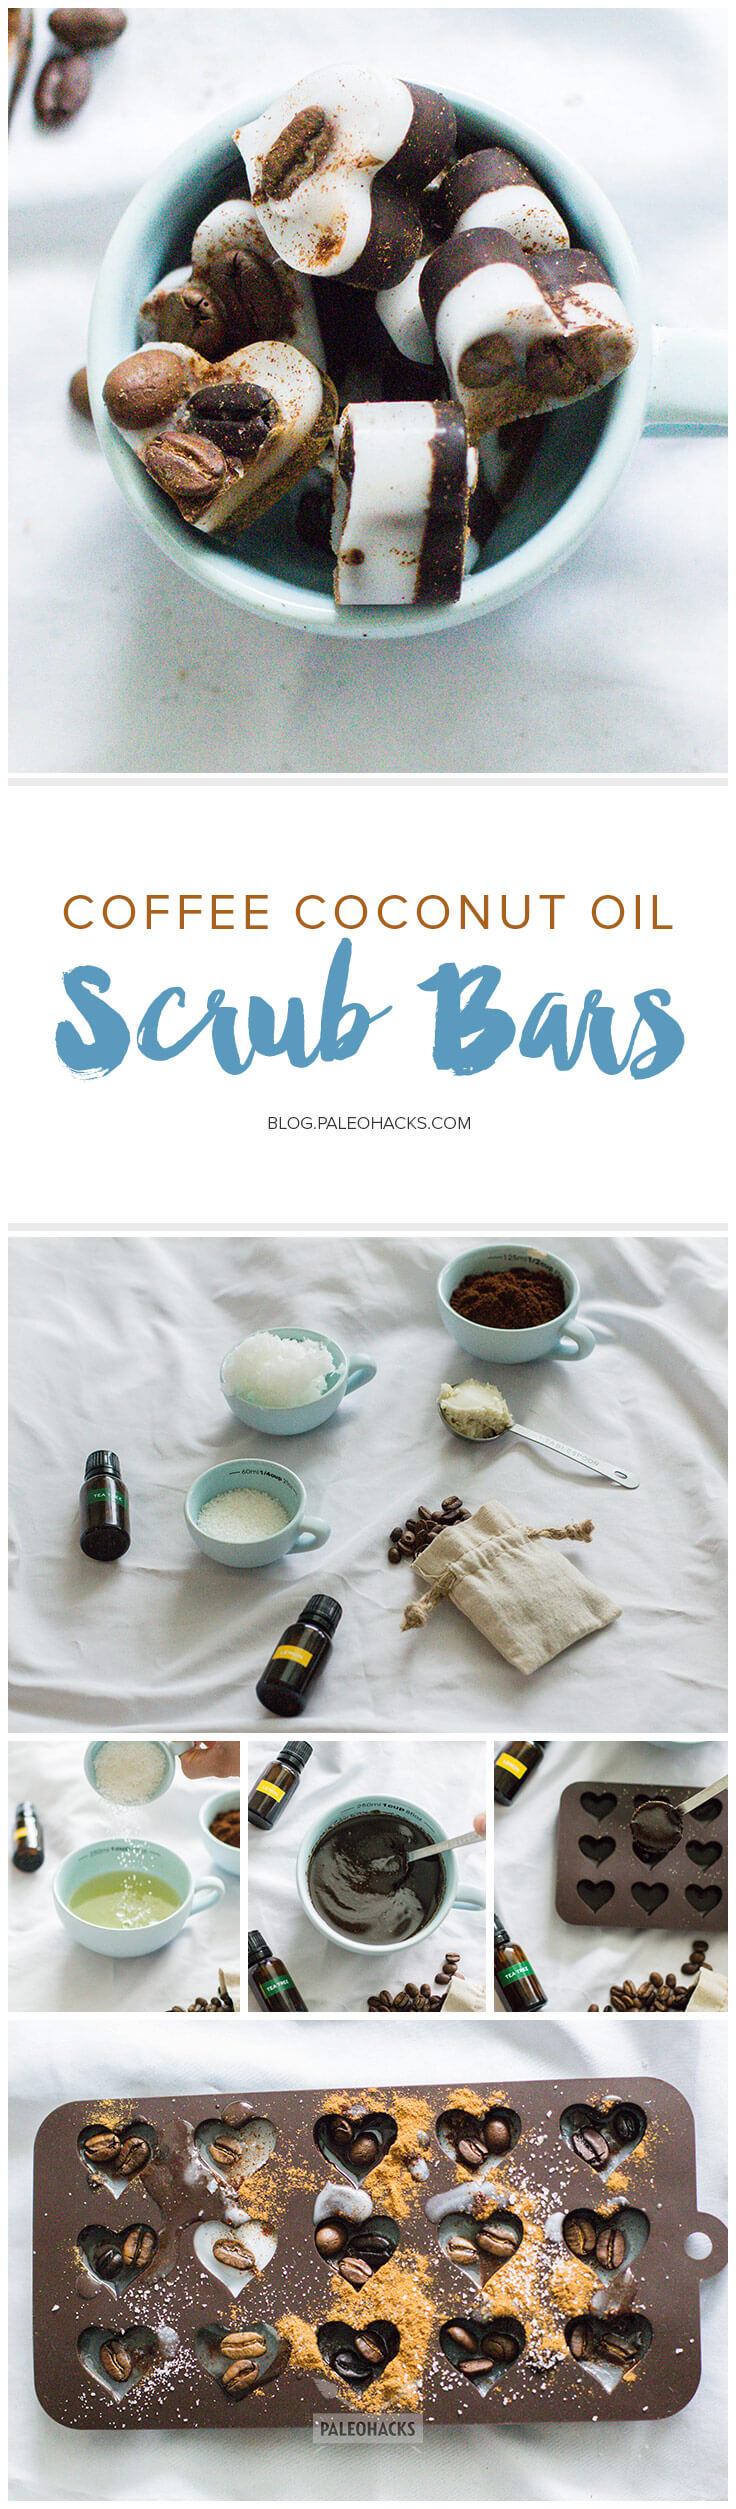 Beauty-pin-Coffee-Coconut-Oil-Scrub-Bars.jpg